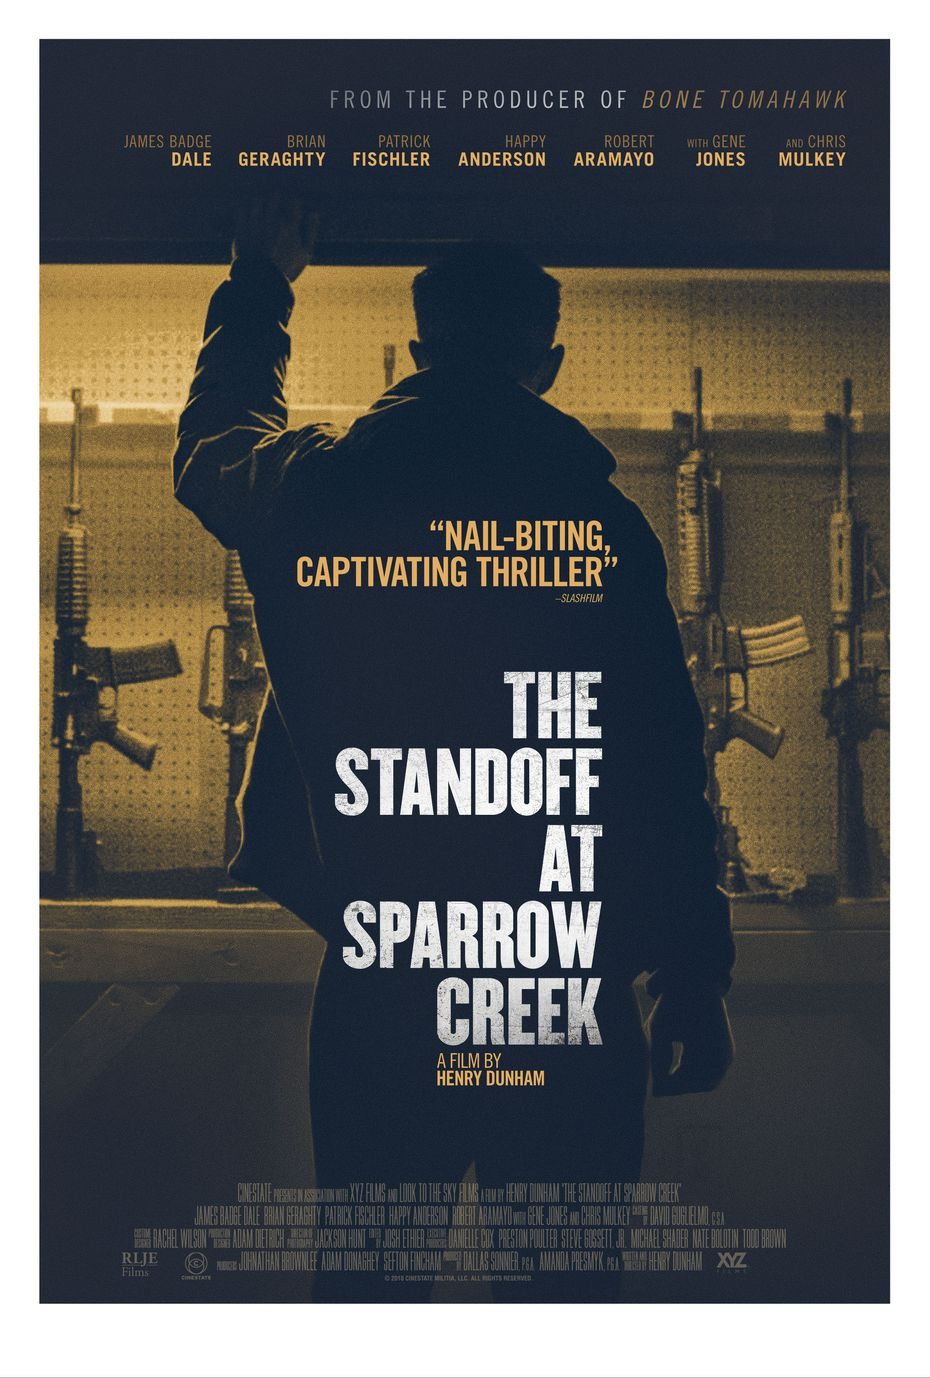 """The Standoff at Sparrow Creek,"""" a film by Henry Dunham, produced by Cinestate"""